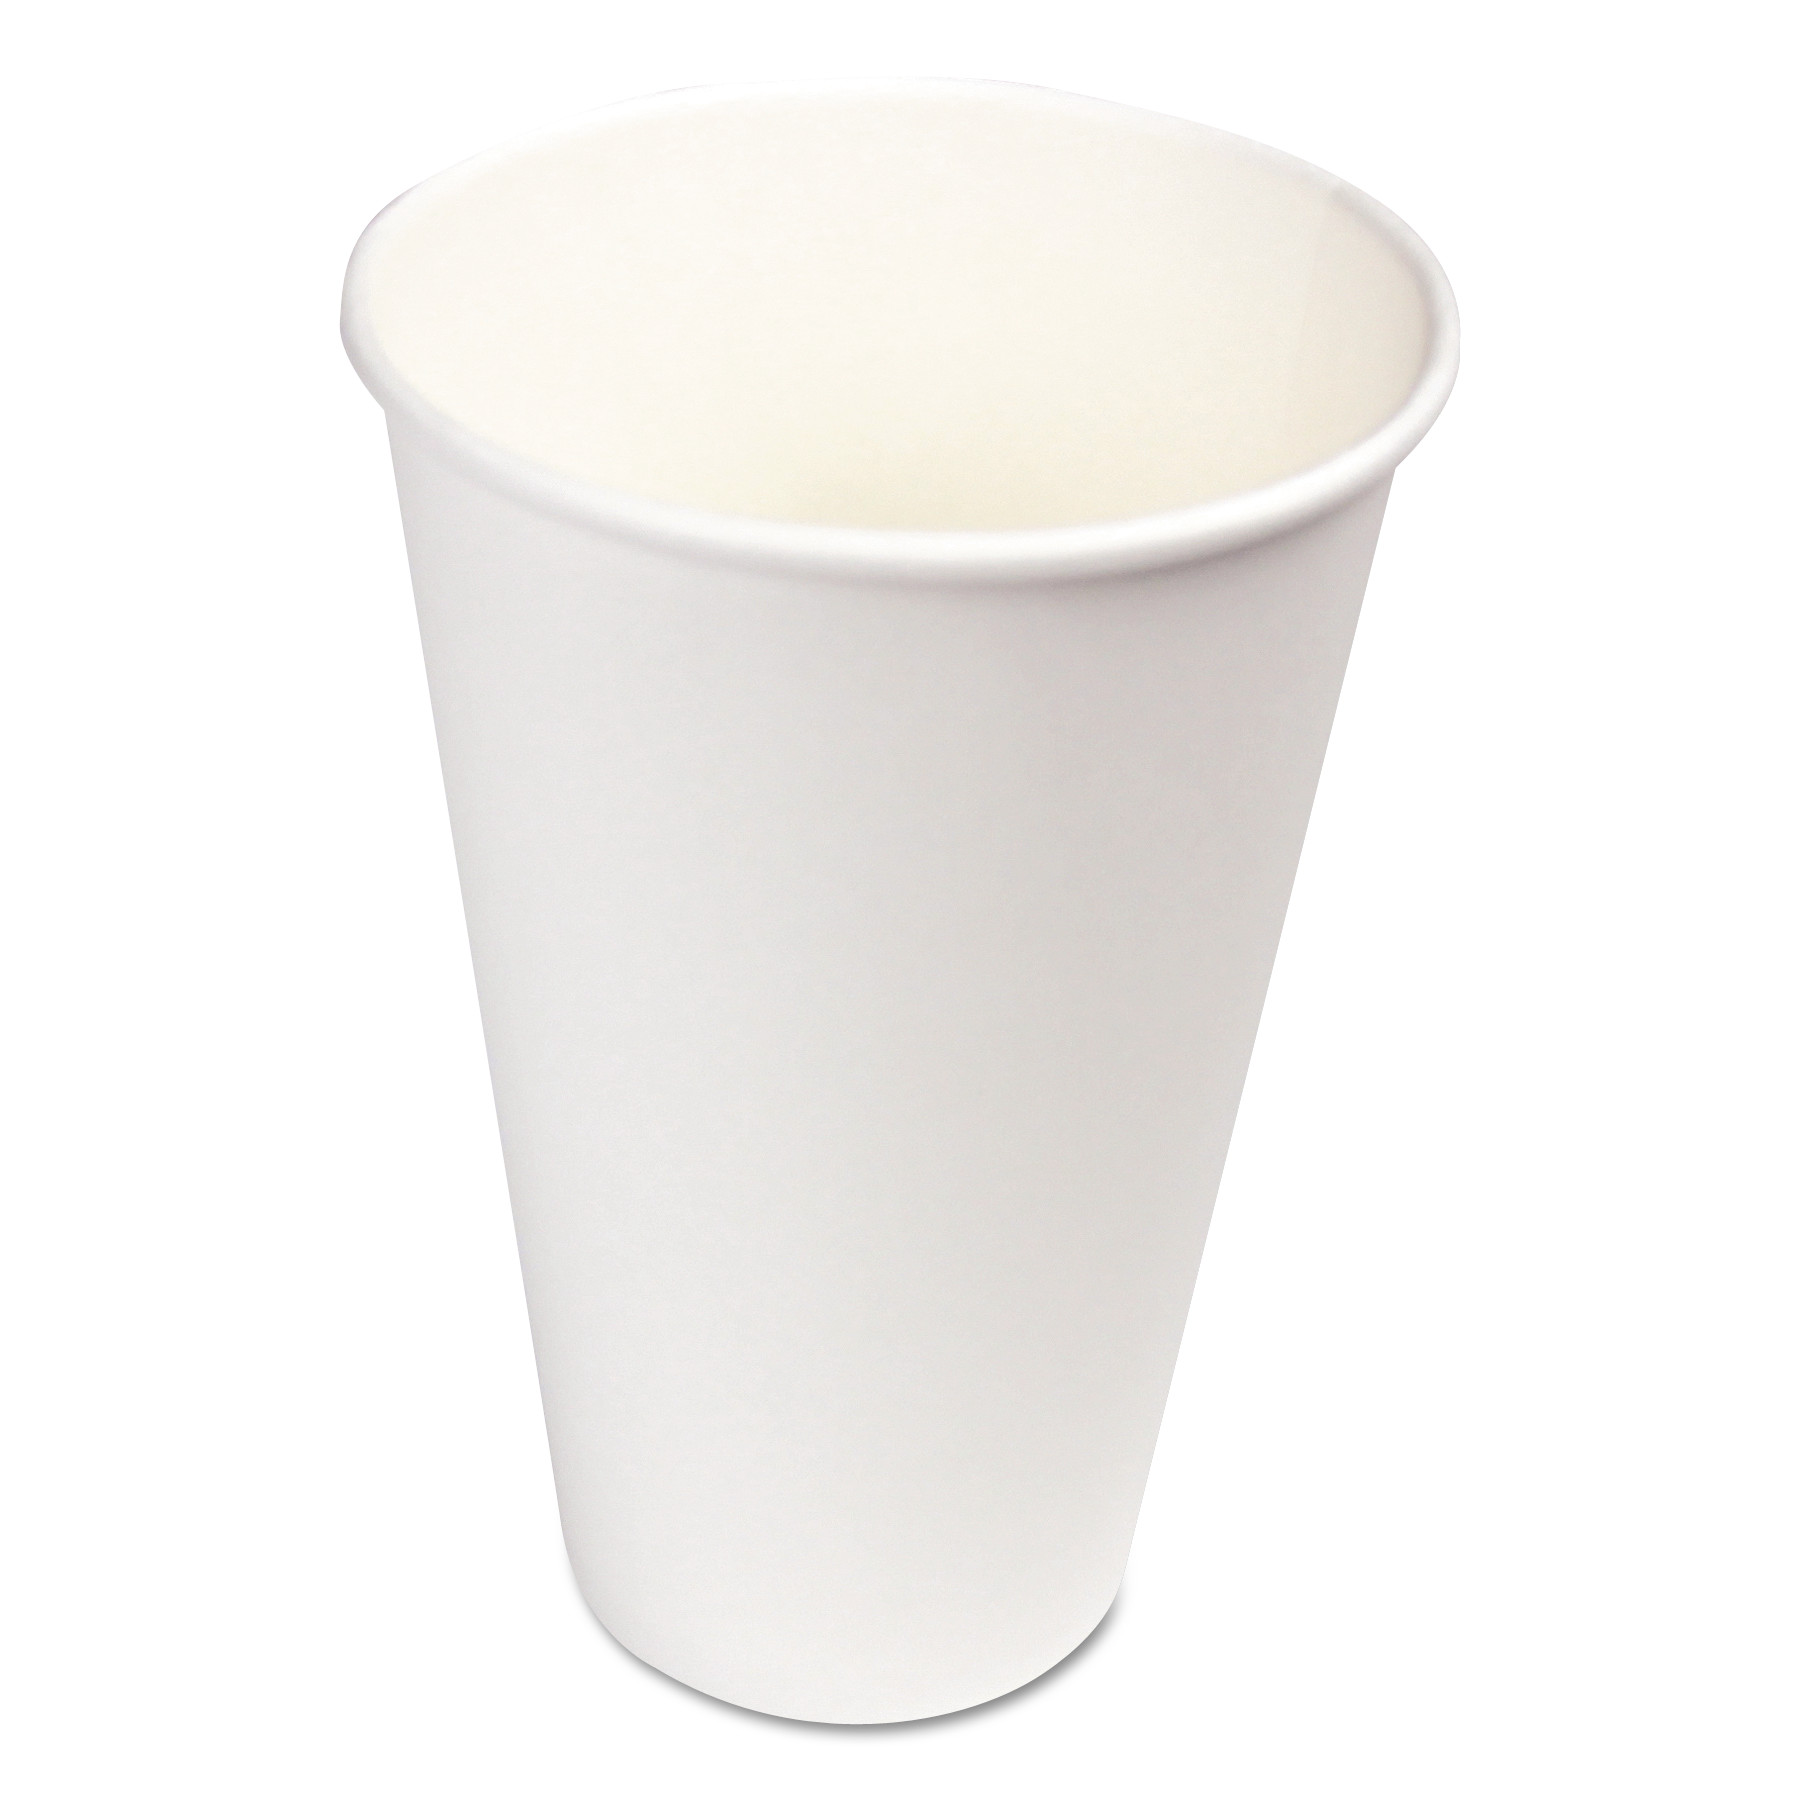 Boardwalk papier Hot Cups 16 oz (environ 453.58 g) Blanc 1000 Carton Wht 16 HCUP